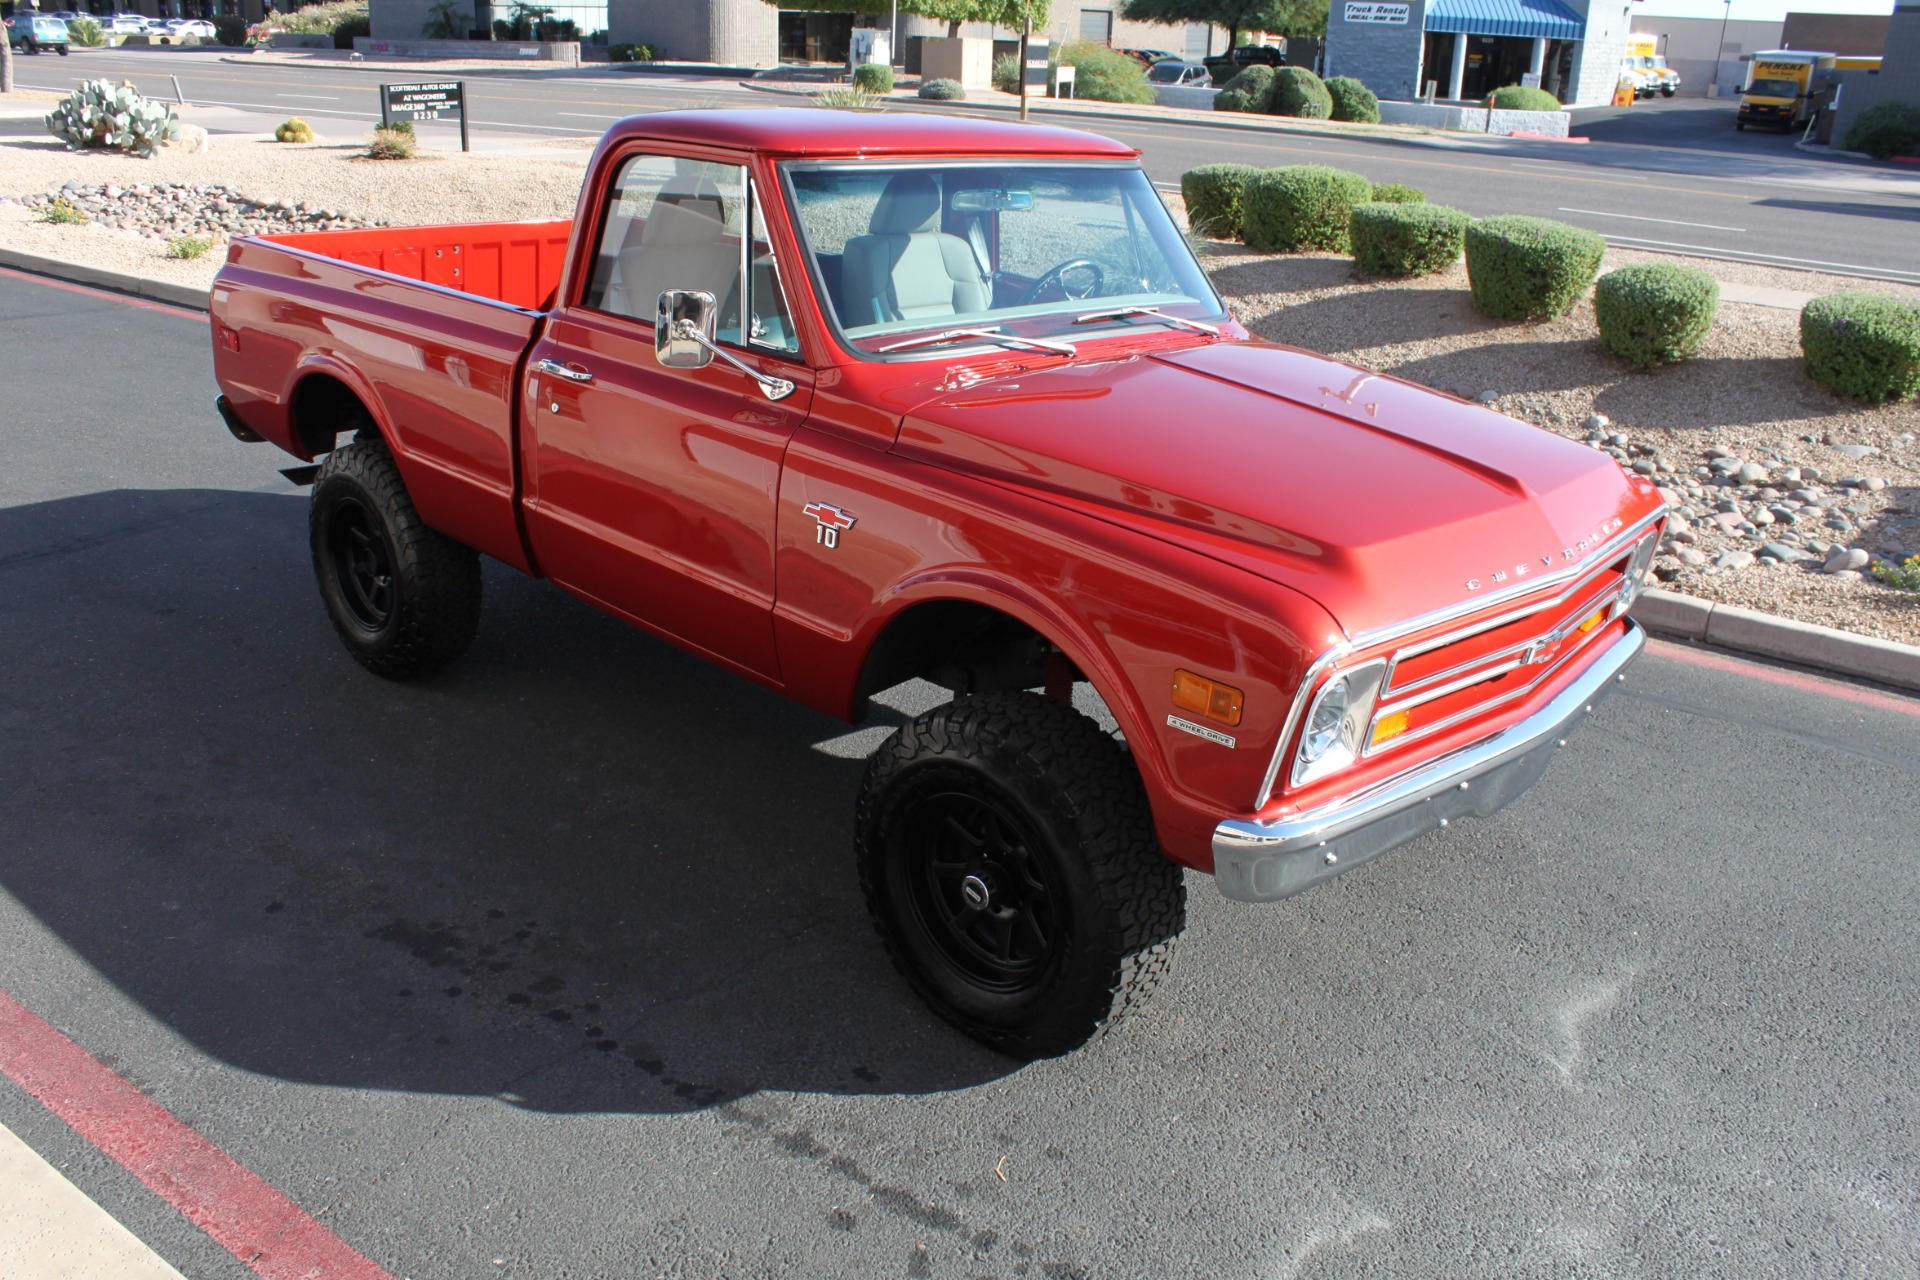 Used-1968-Chevrolet-K10-(C10)-1/2-Ton-Short-Bed-4X4-XJ